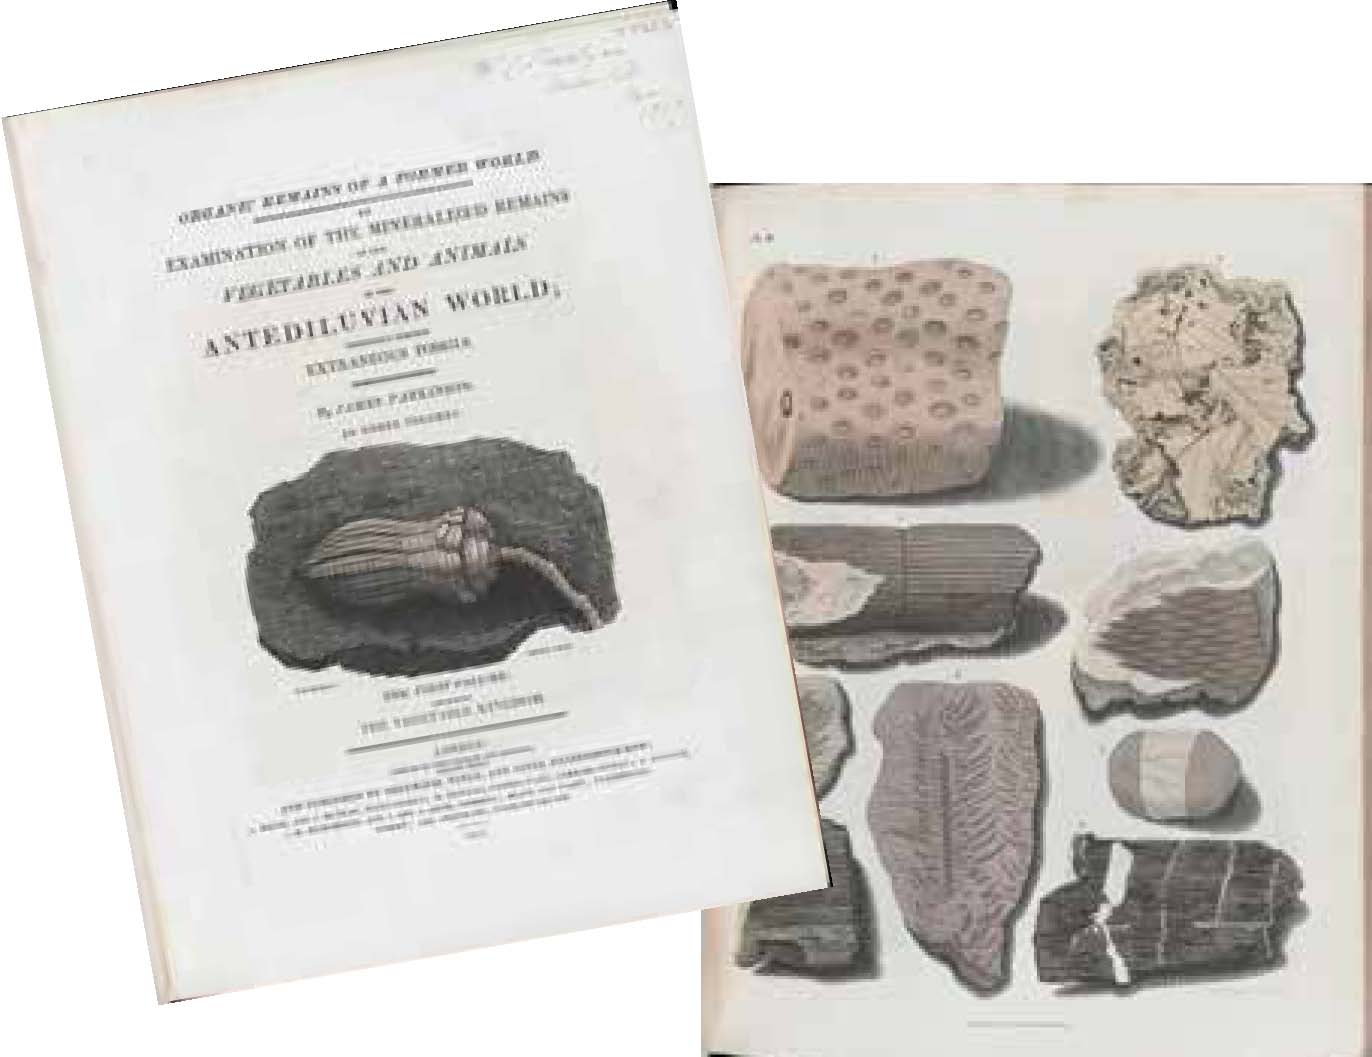 Images of pages from Organic Remains